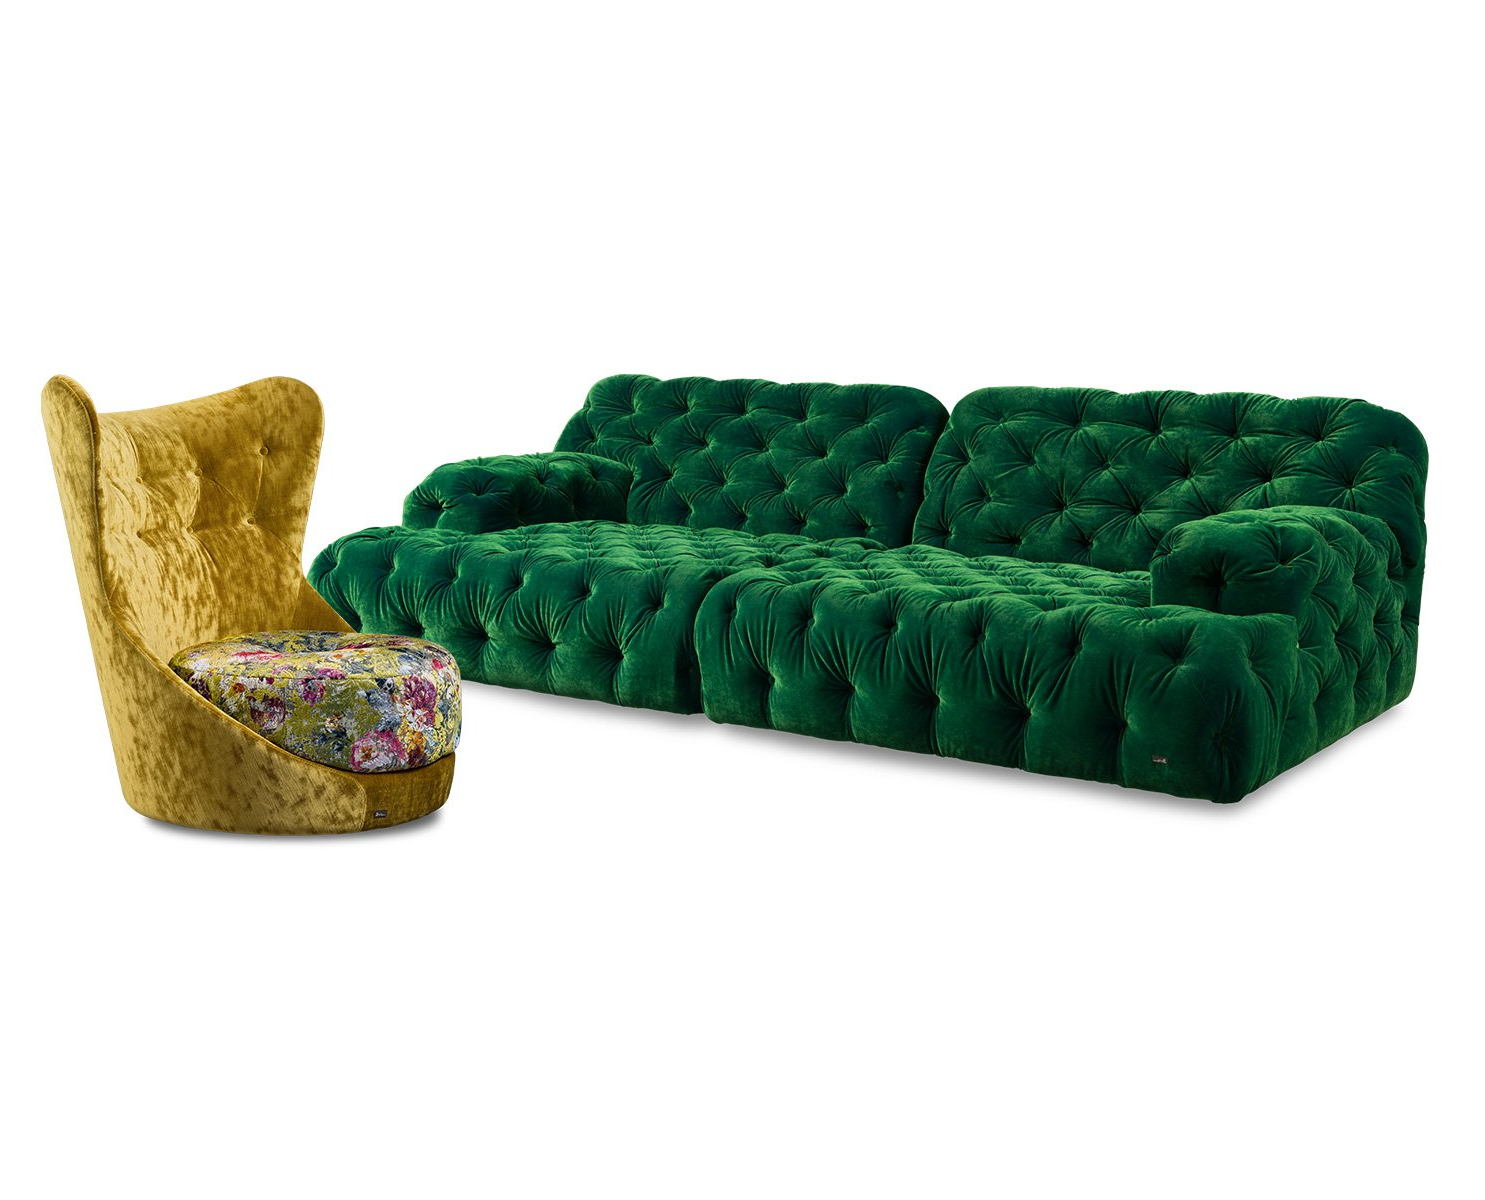 Sofa Chairs Regarding Most Recently Released Sofas & Chairs Archive – Bretz (View 17 of 20)